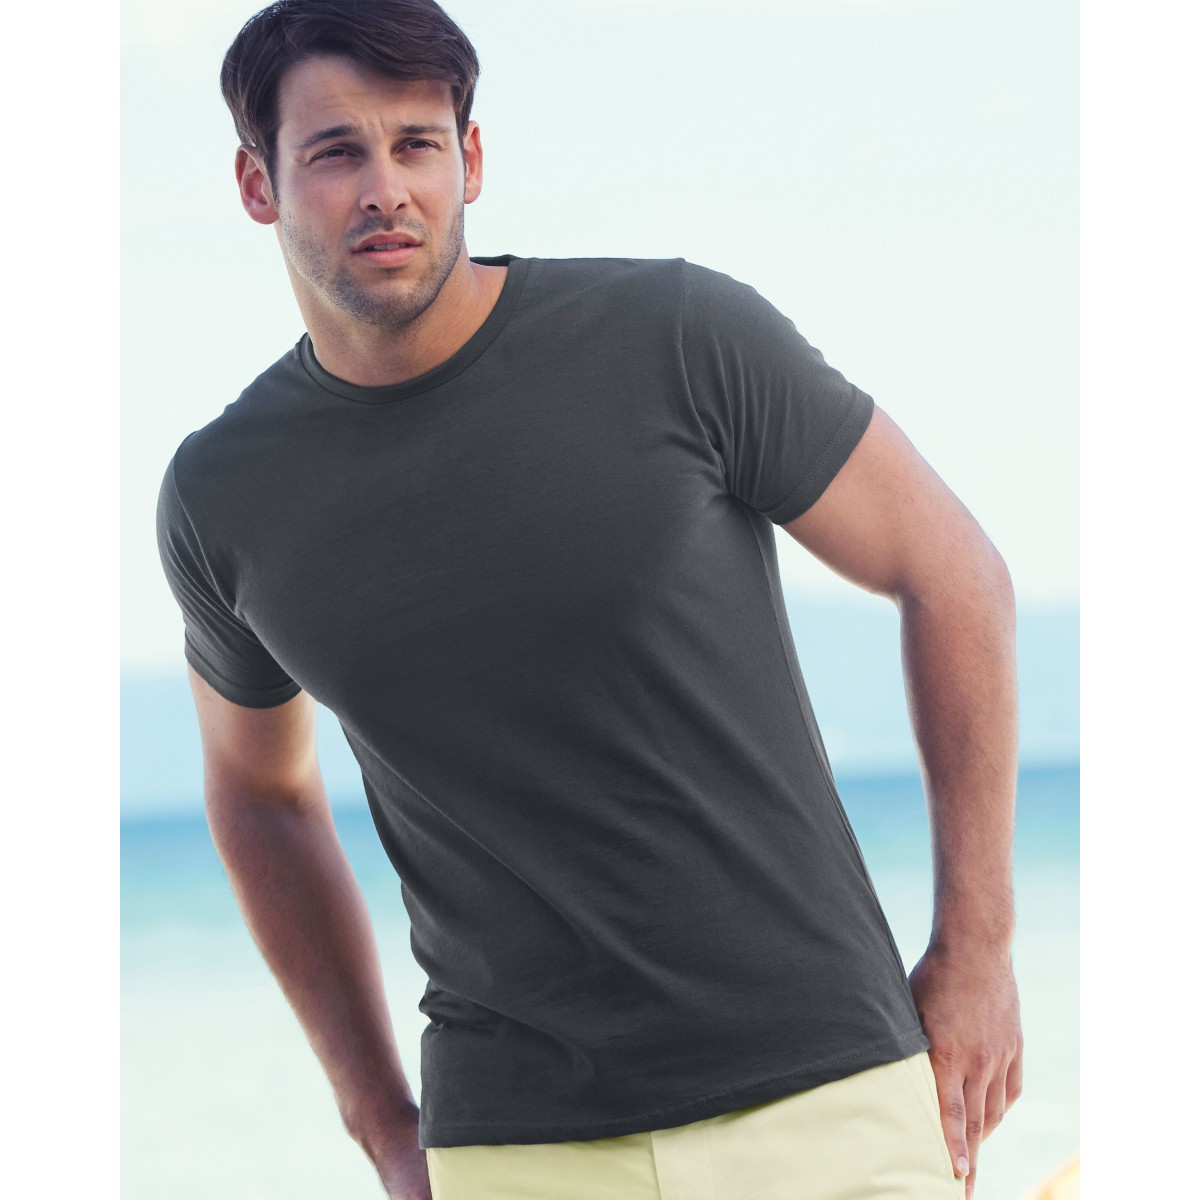 028b23d681b4 Fruit Of The Loom Men s Fitted Valueweight T-shirt